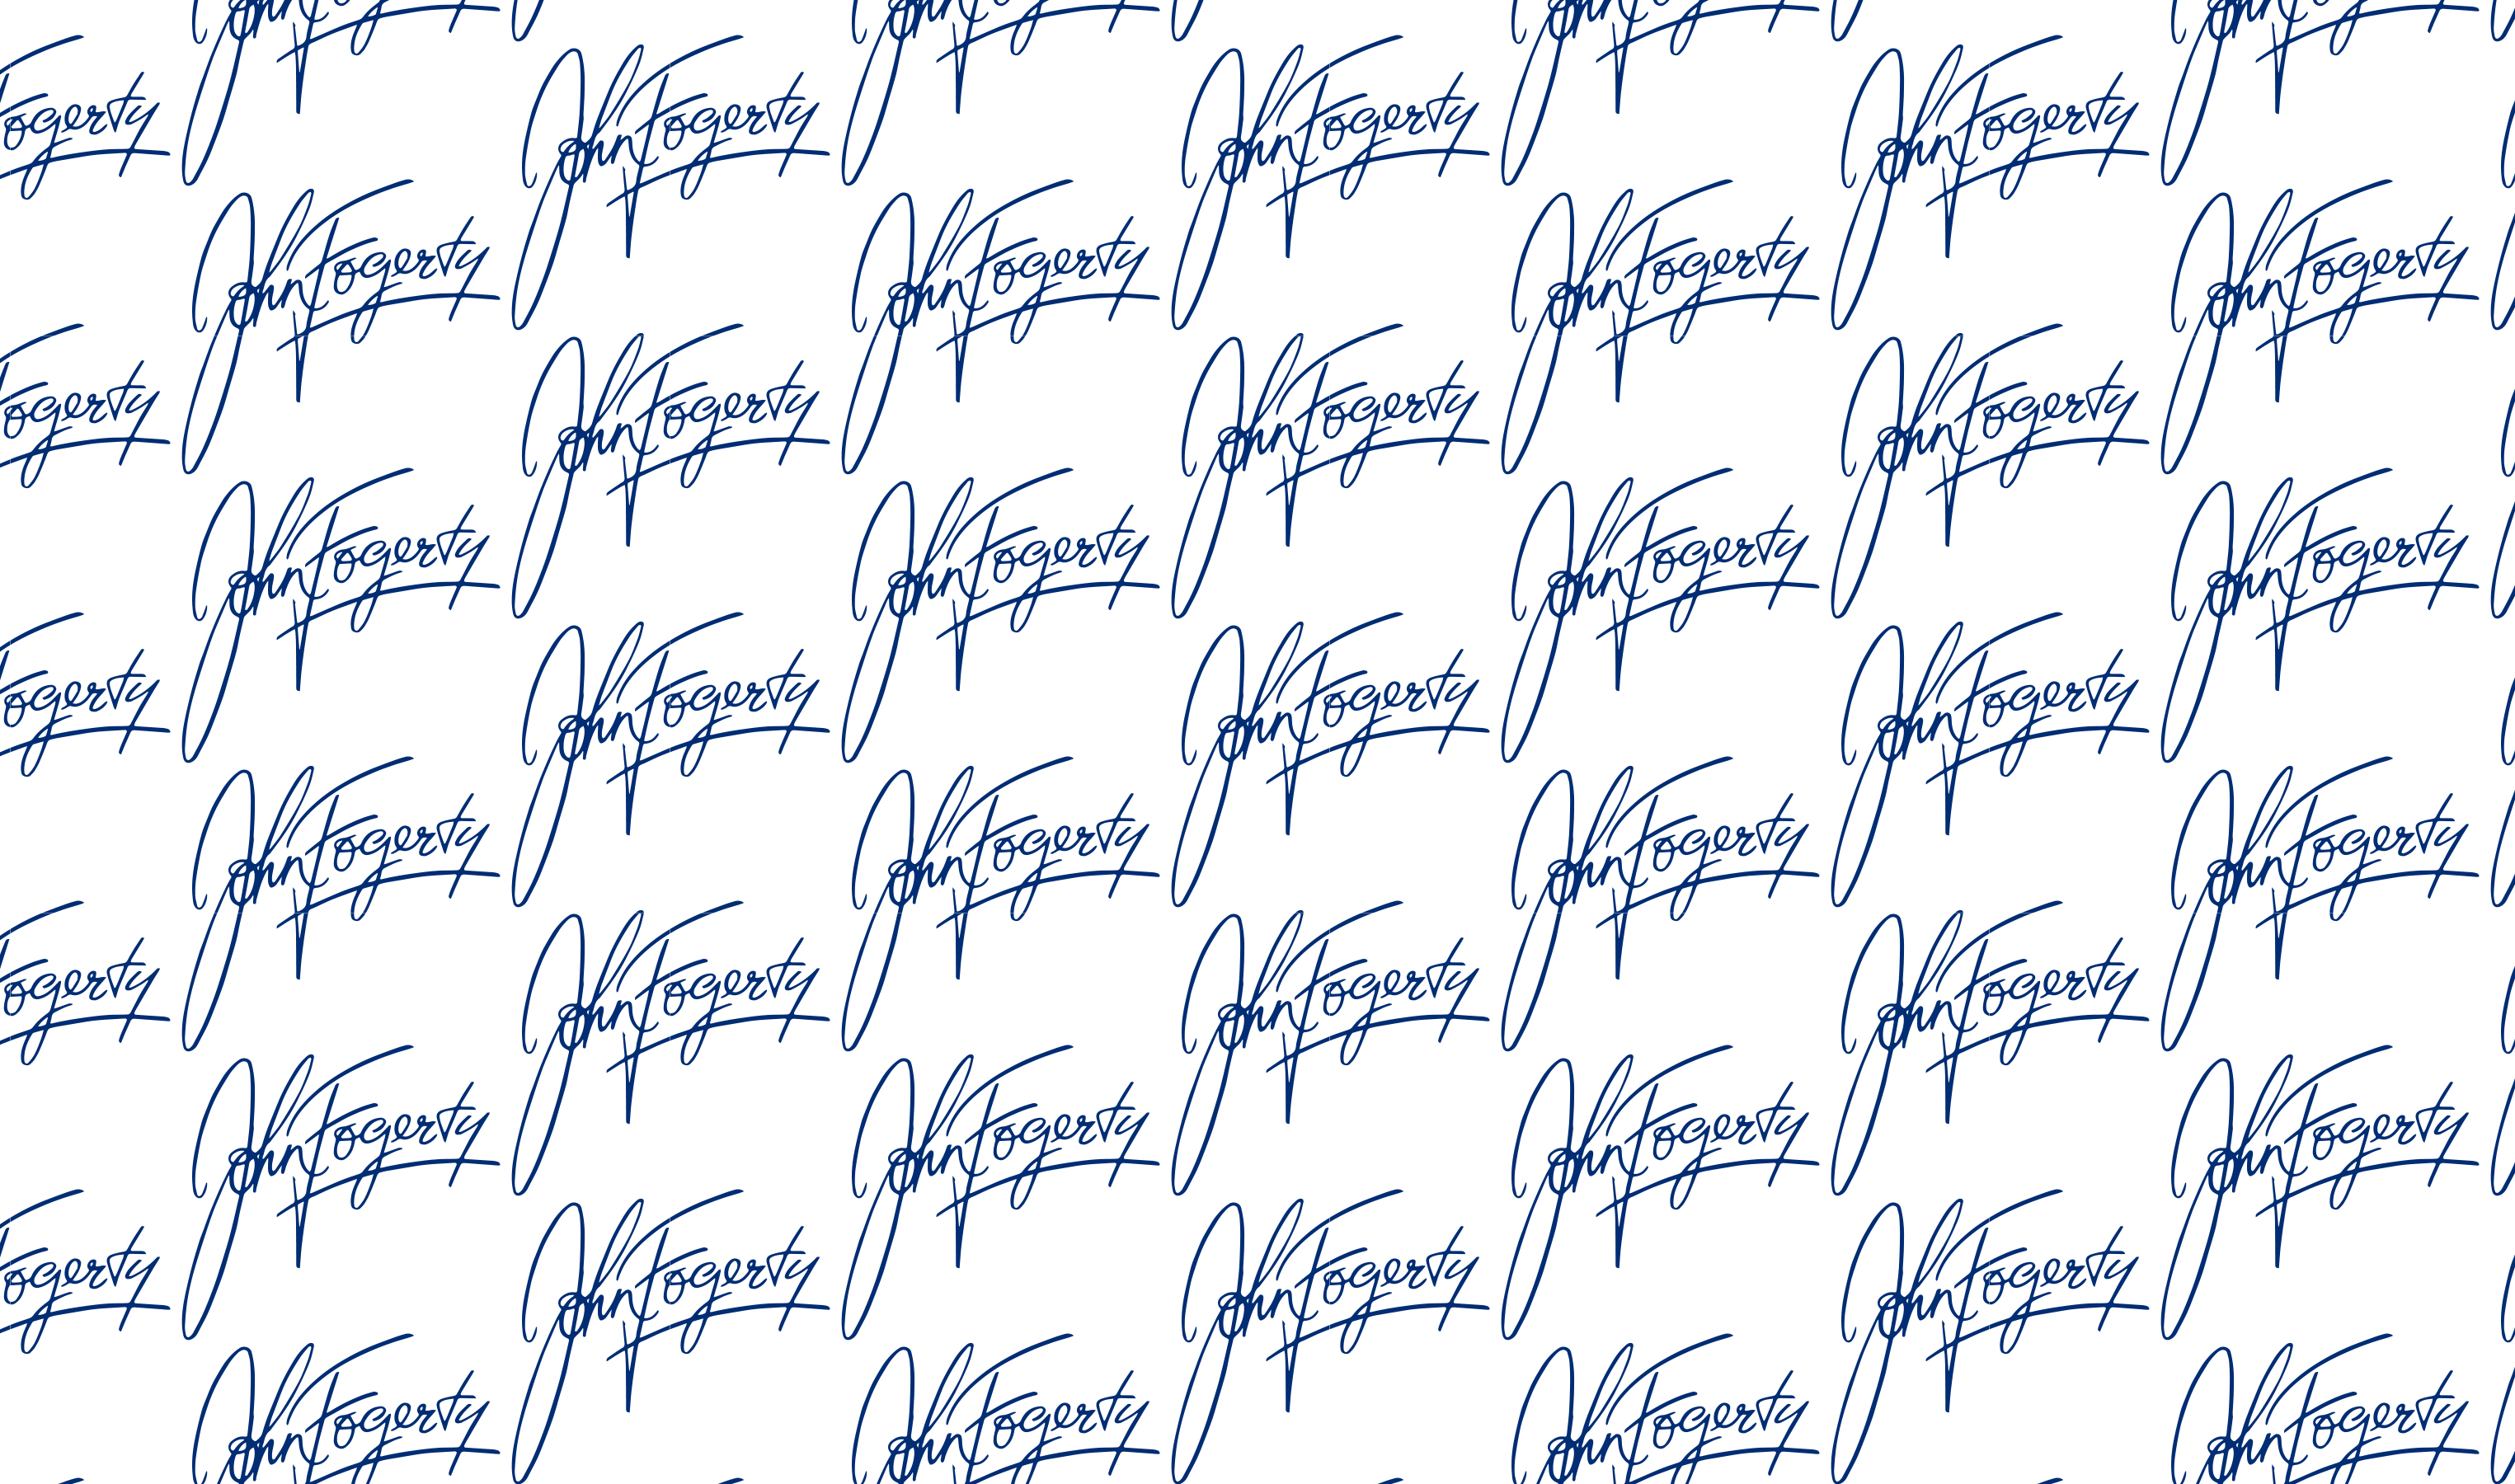 John Fogerty Calligraphy Wrapping Paper